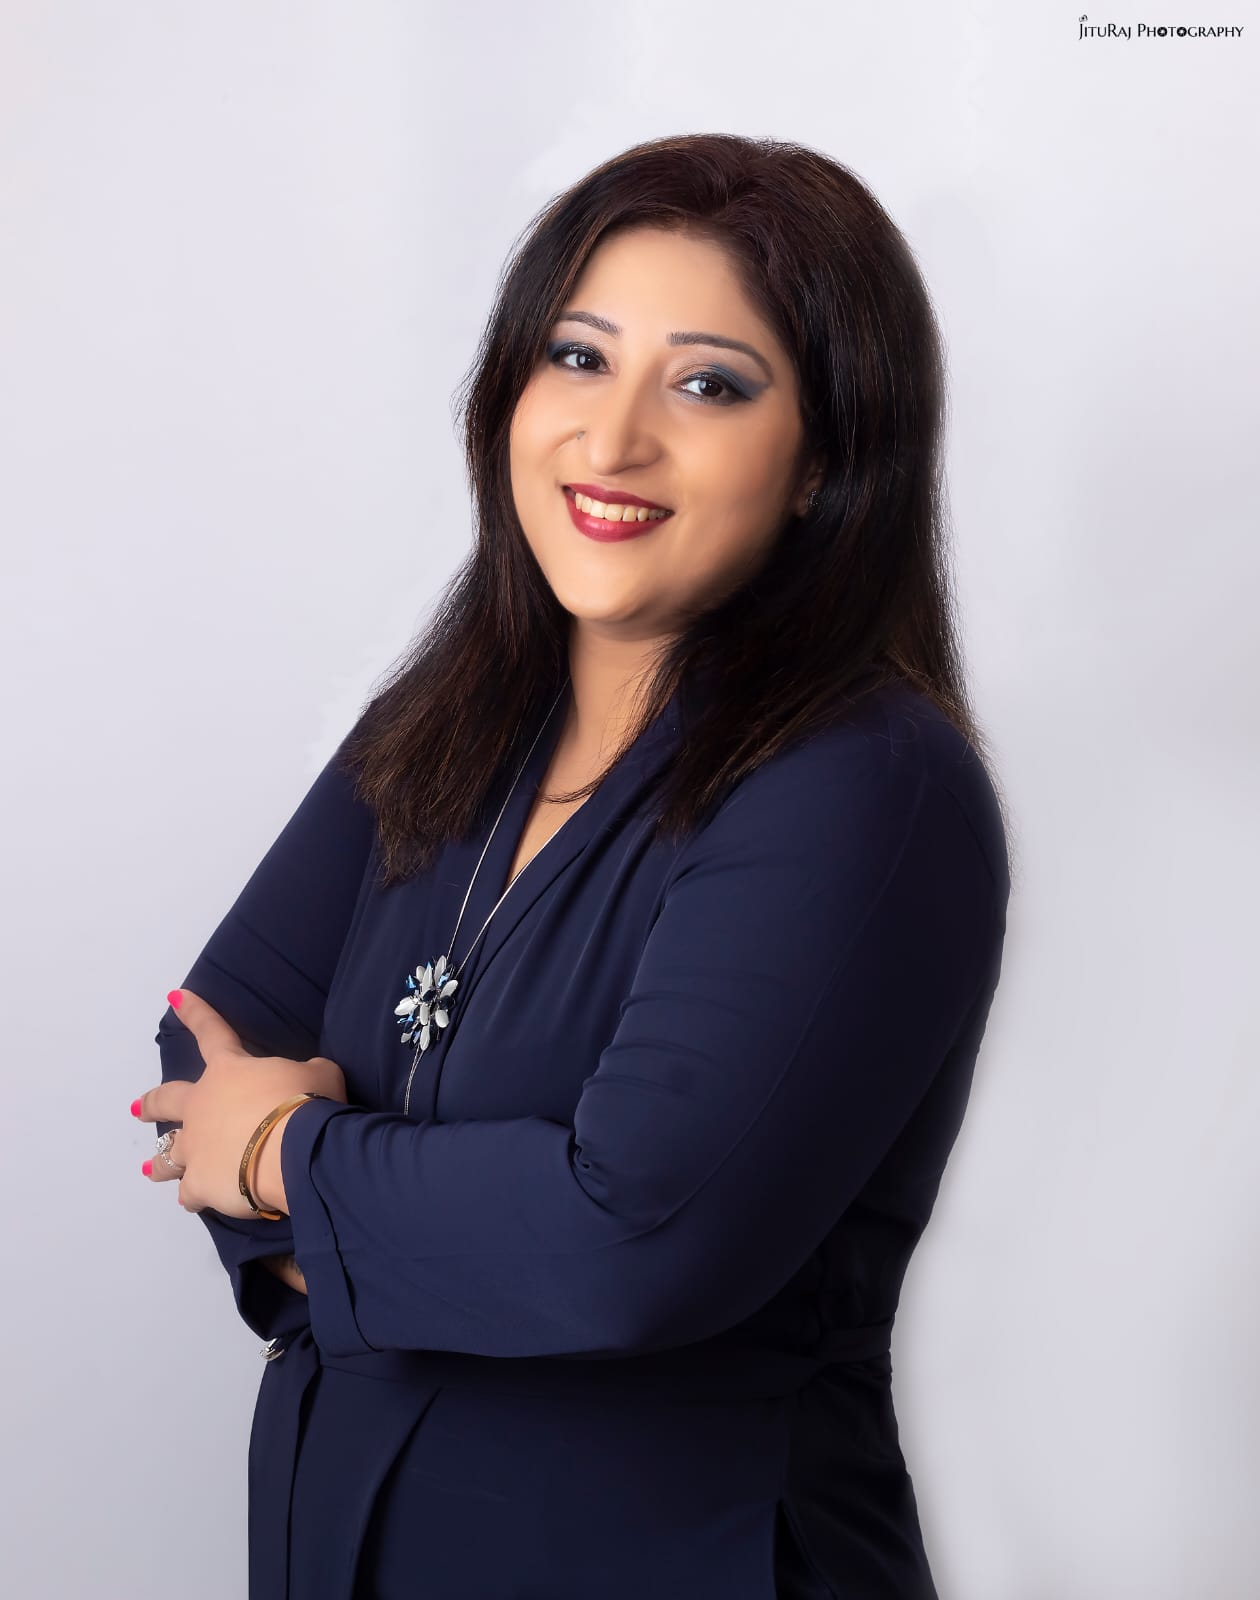 Dr. Raina Khatri Tandon, CEO Right2rise Talks About Diversity And Inclusion Through A Strong Woman